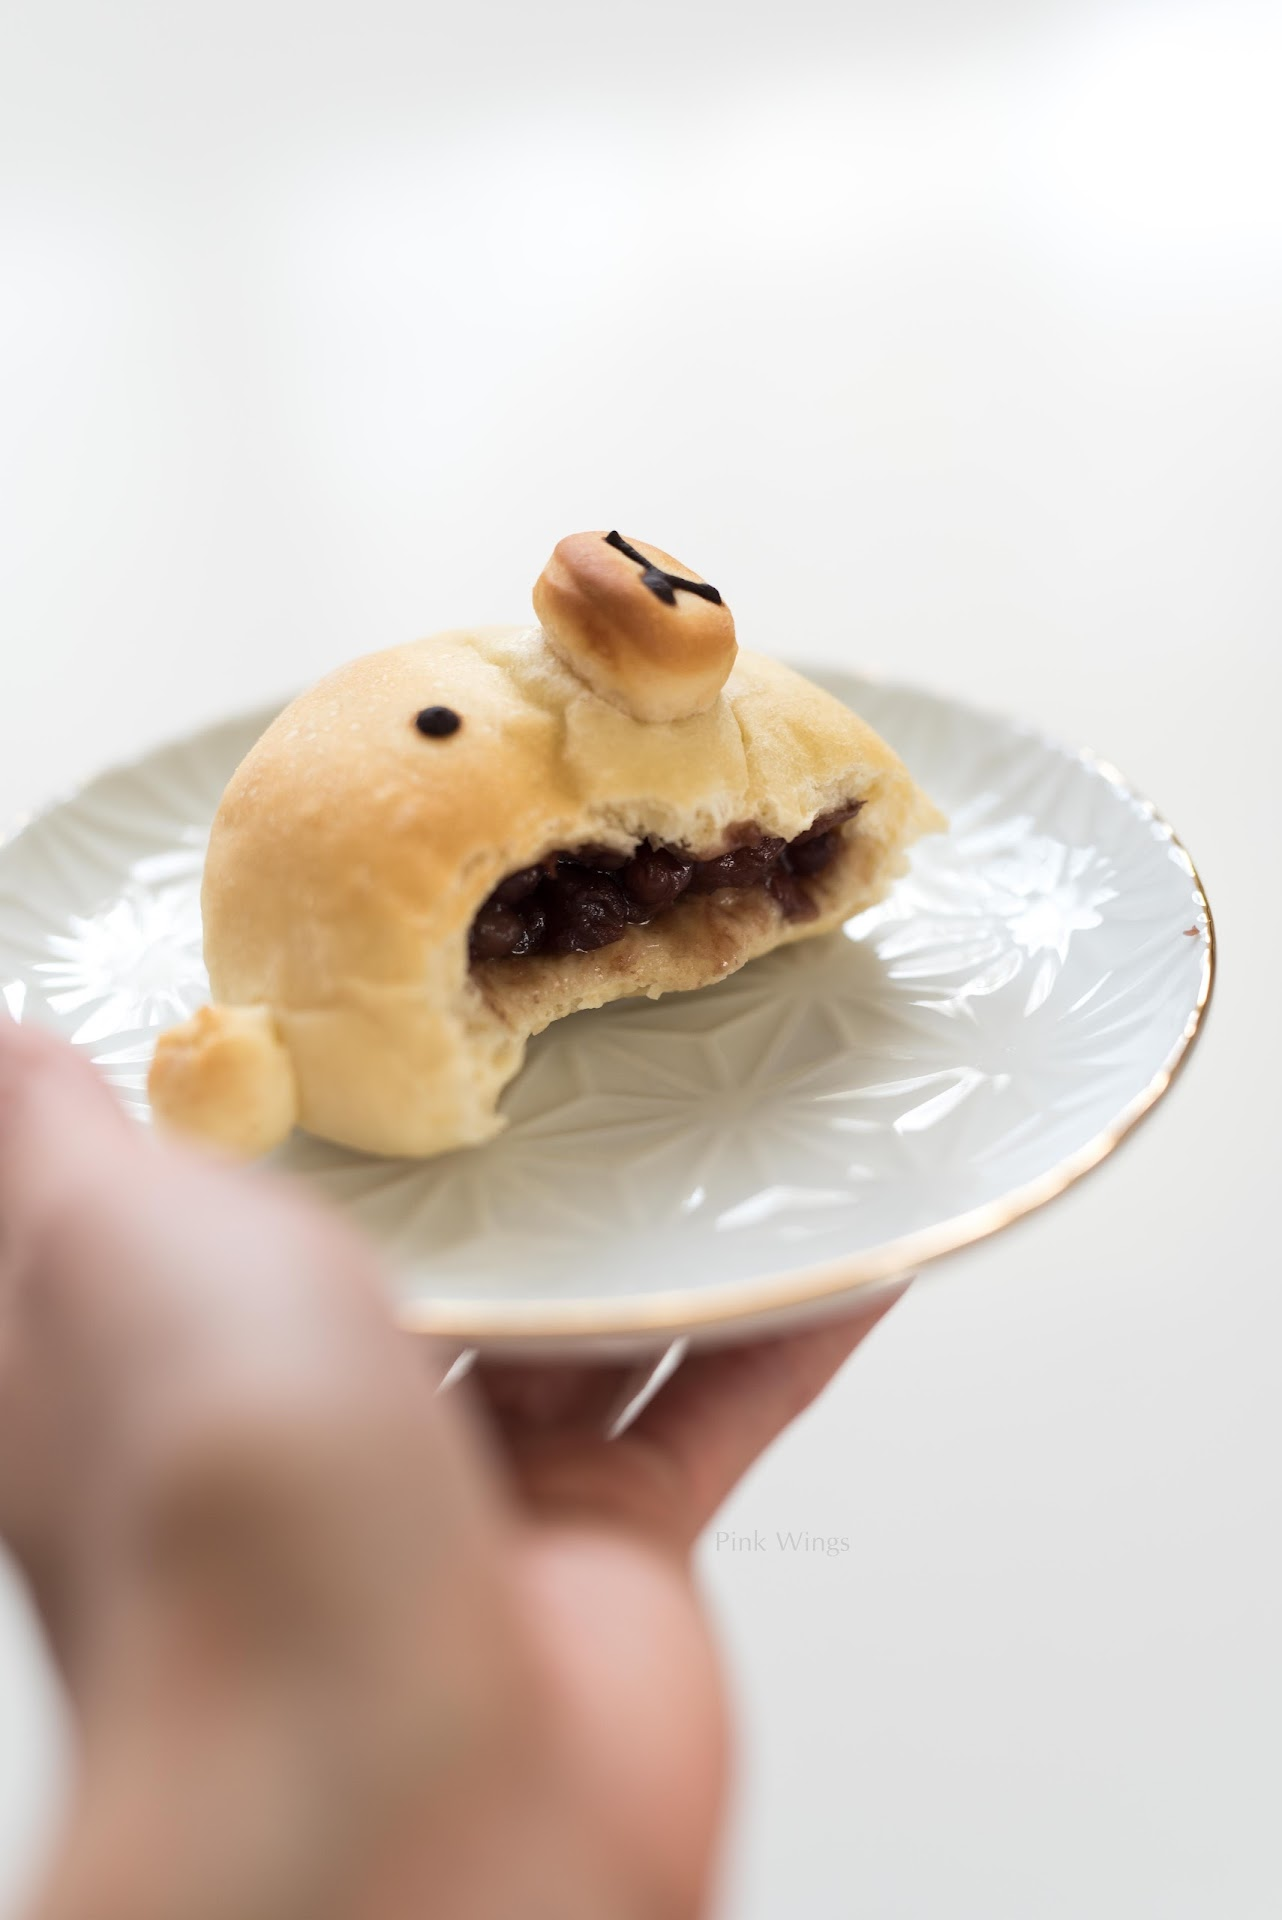 sweet red bean paste recipes, recipes using red bean paste, asian food blog, korean food blog, korean dessert recipe, japanese dessert recipe, asian desserts, half asian blog, lds food blogger, mormon